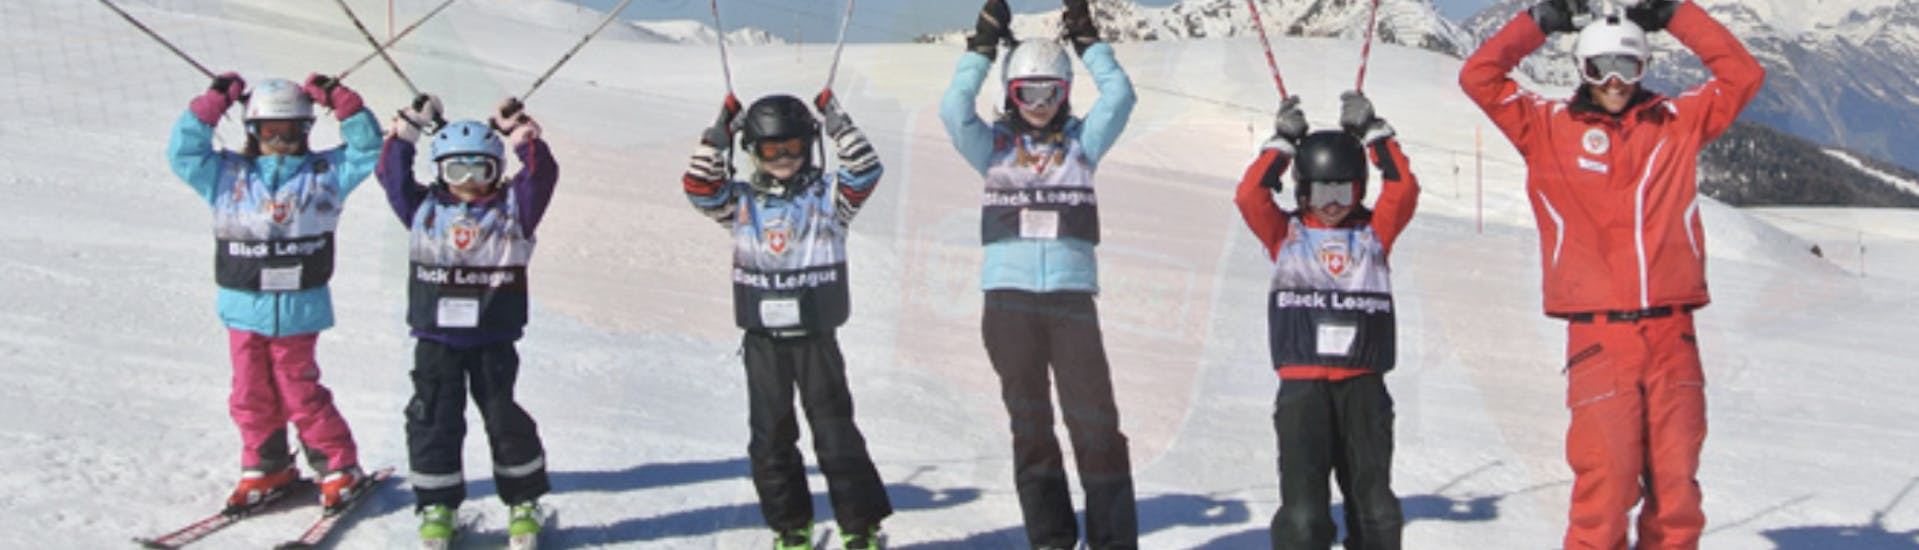 Skiing Lessons for Kids (5-12 years) Tracouet